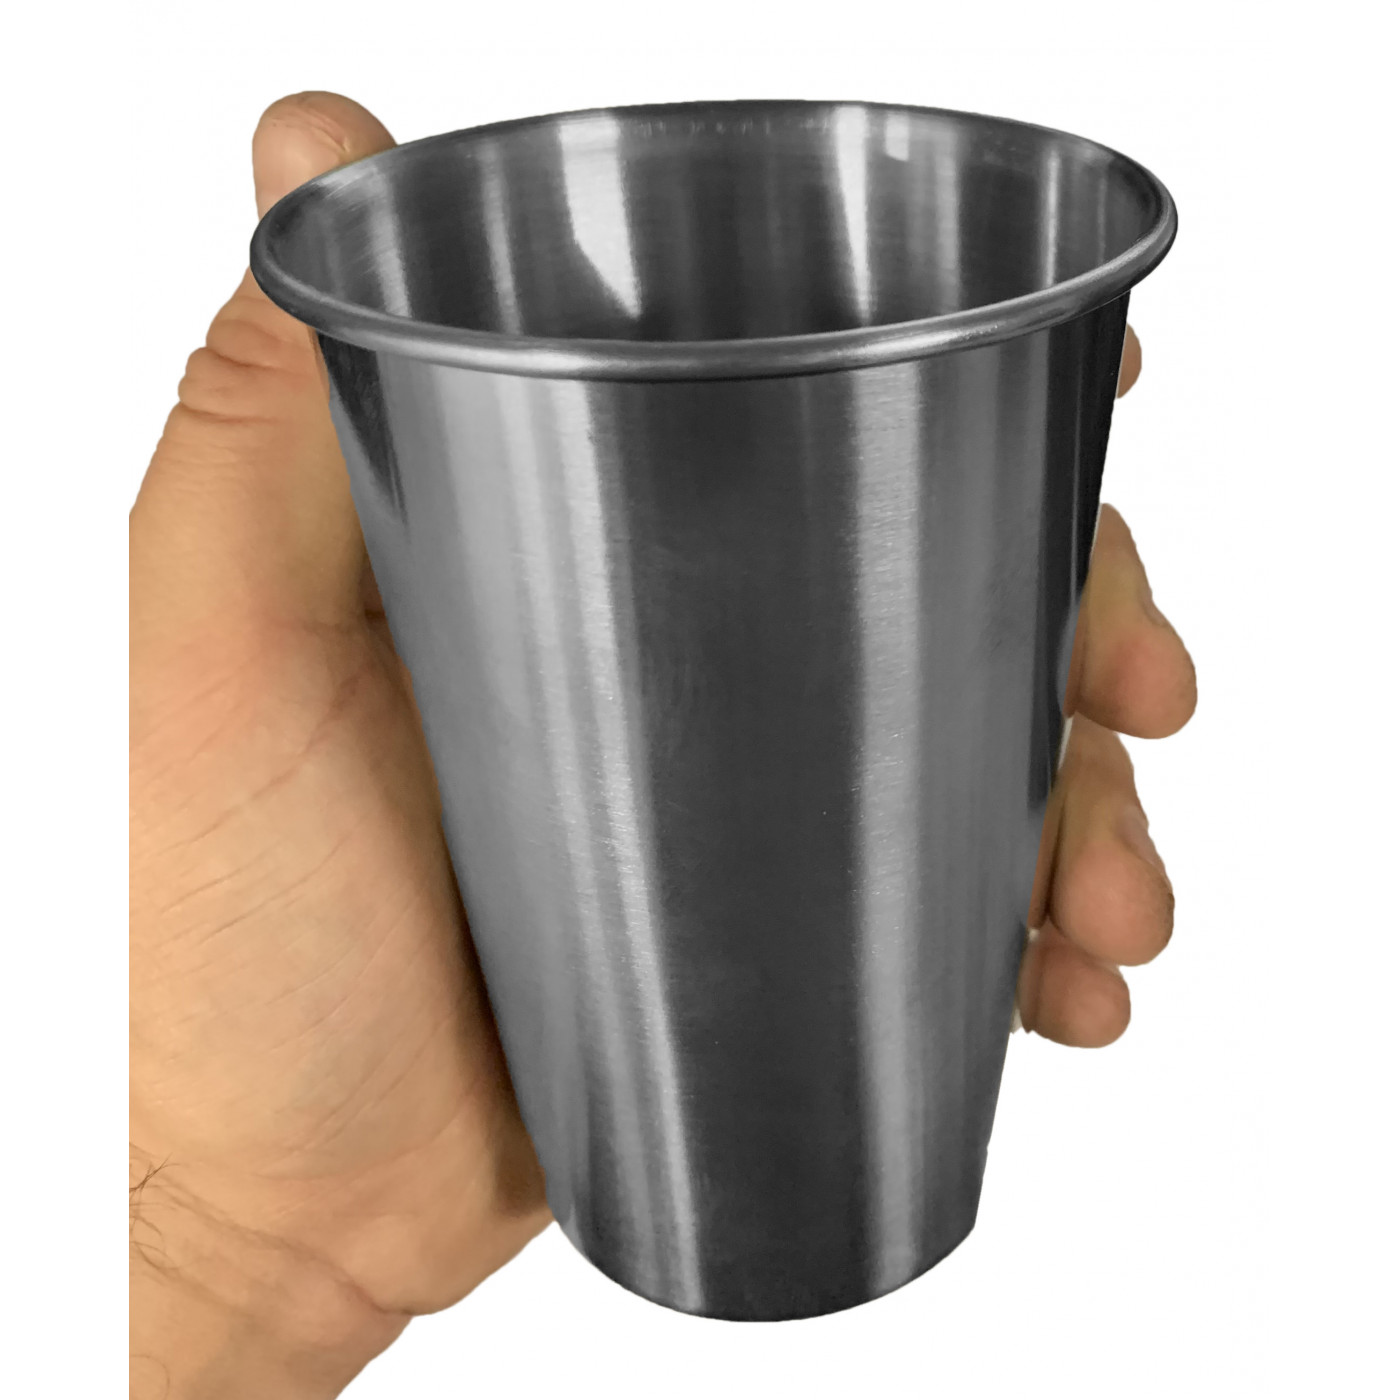 Set of 6 stainless steel (wine)cups, 500 ml